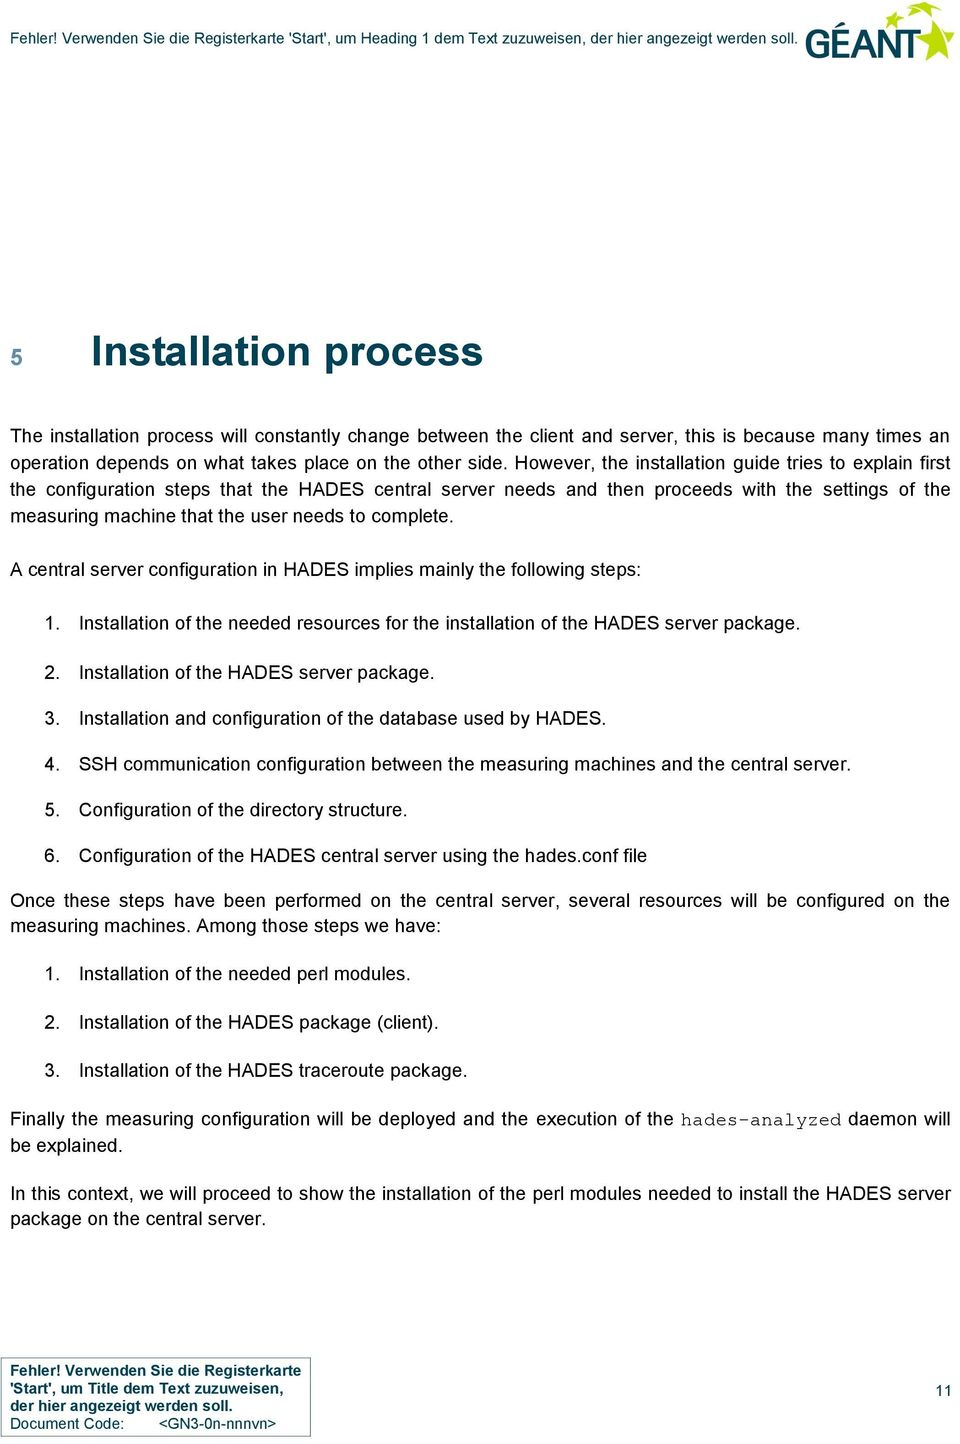 However, the installation guide tries to explain first the configuration steps that the HADES central server needs and then proceeds with the settings of the measuring machine that the user needs to